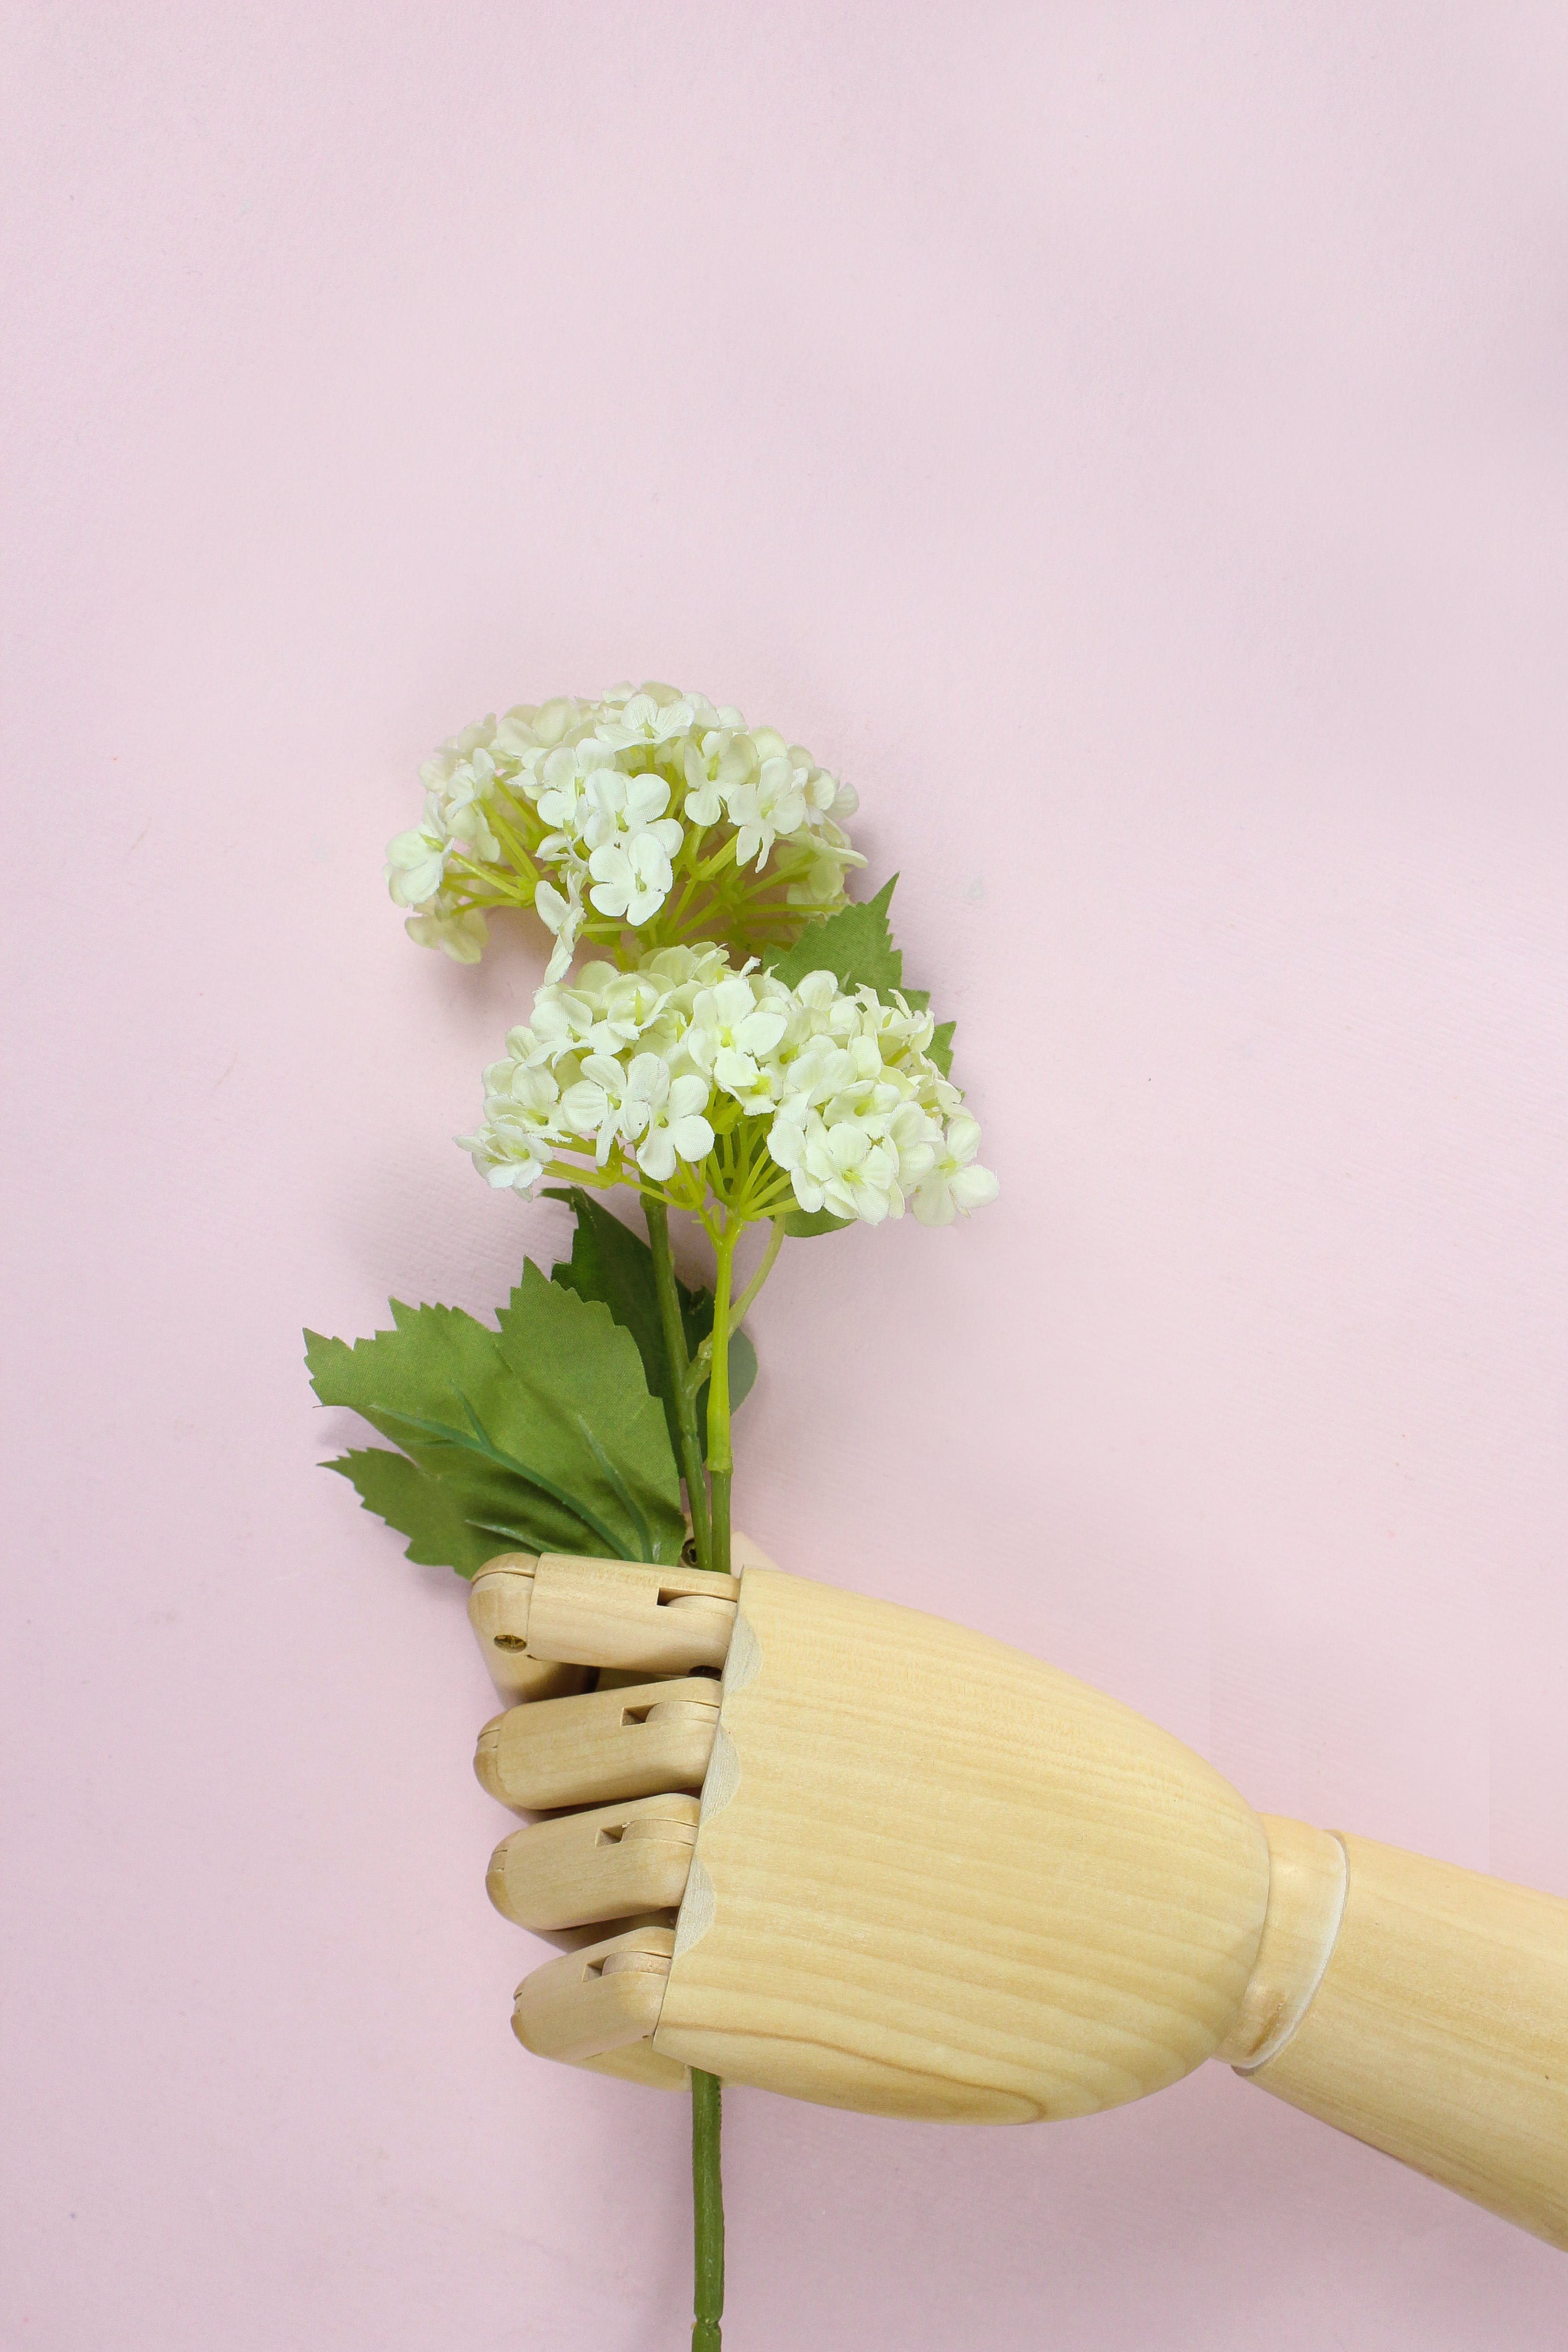 Brown Wooden Hand Holding White Hydrangea Flowers